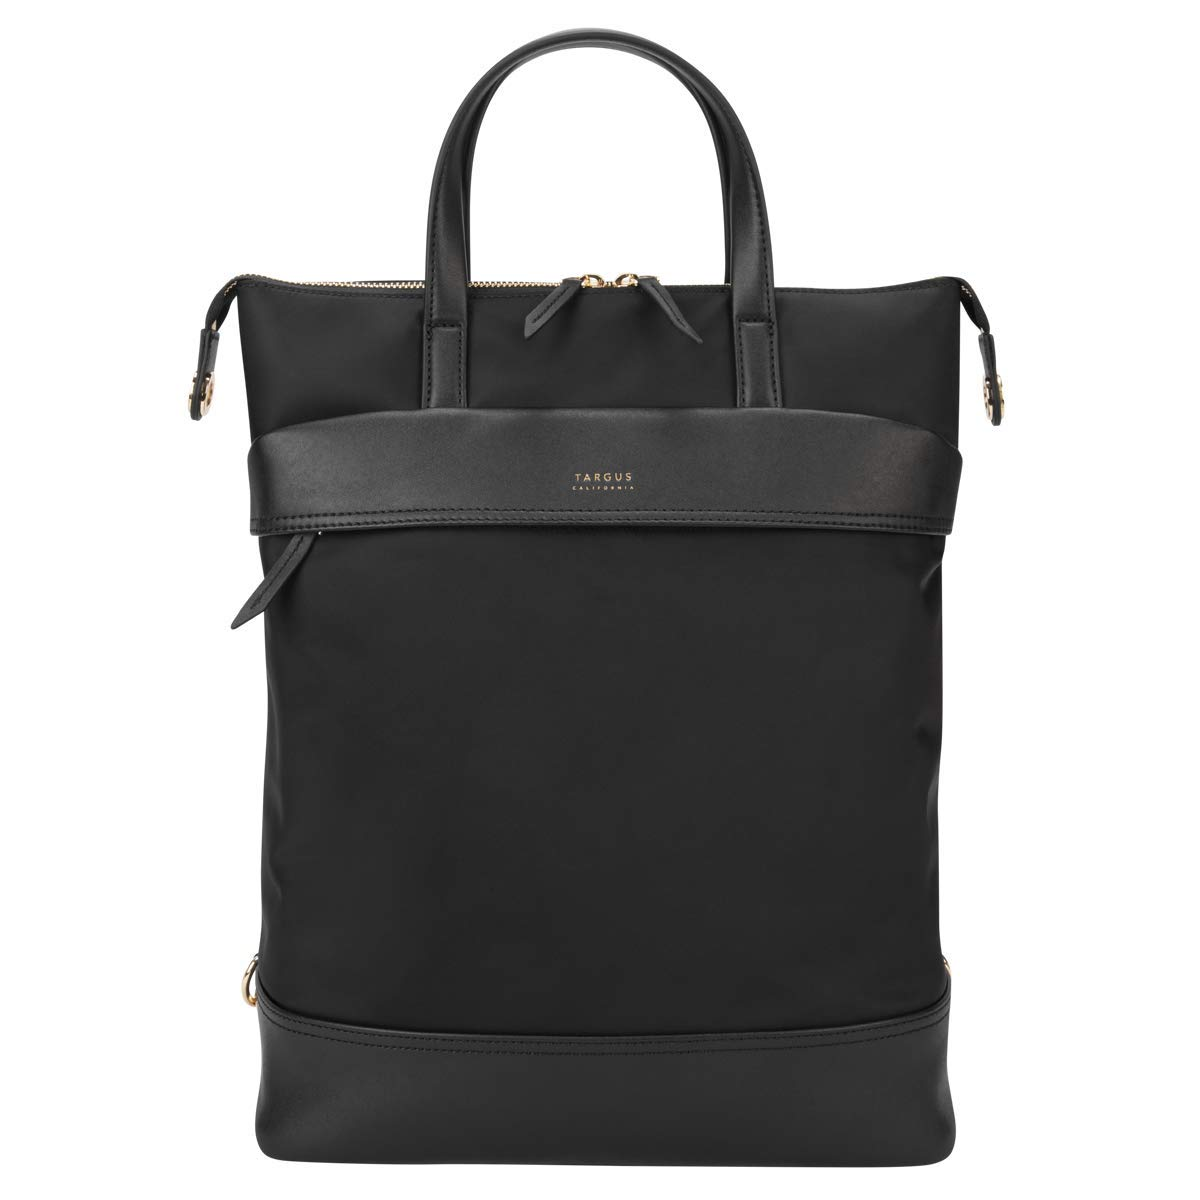 Targus Newport Convertible 2-in-1 Tote Bag and Backpack (TSB948BT) by Targus